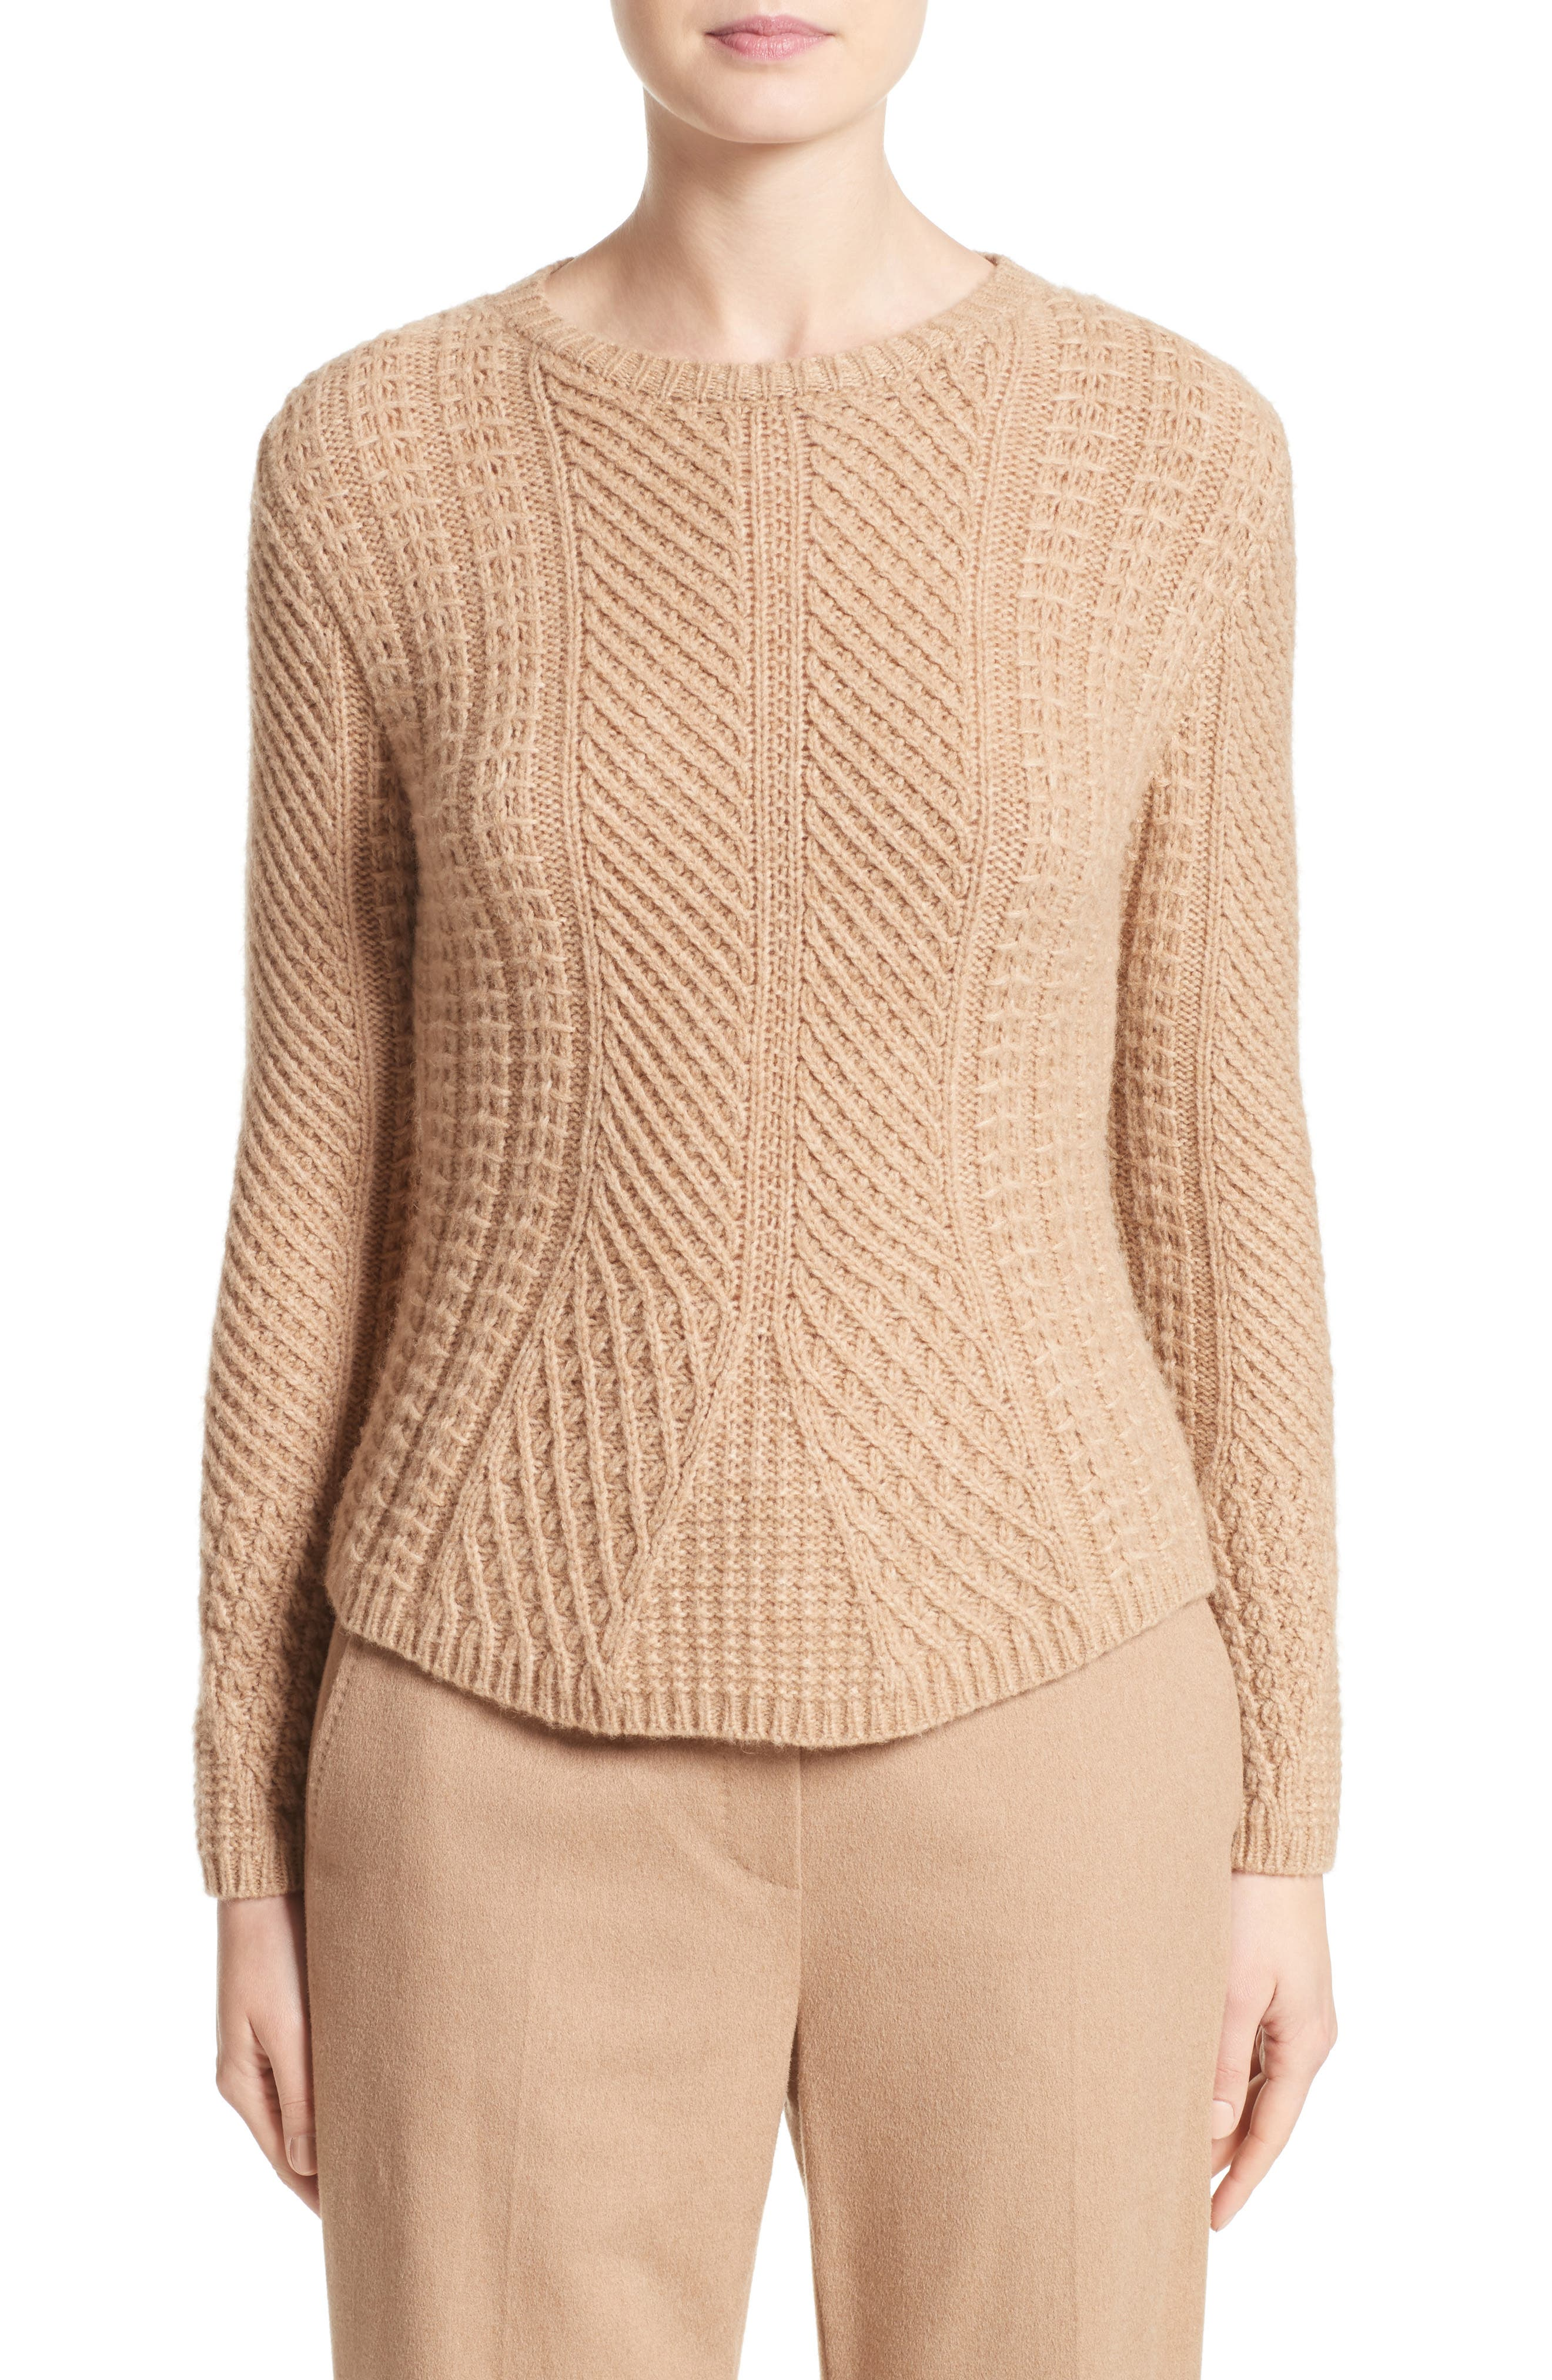 Ronco Sweater,                         Main,                         color, Camel